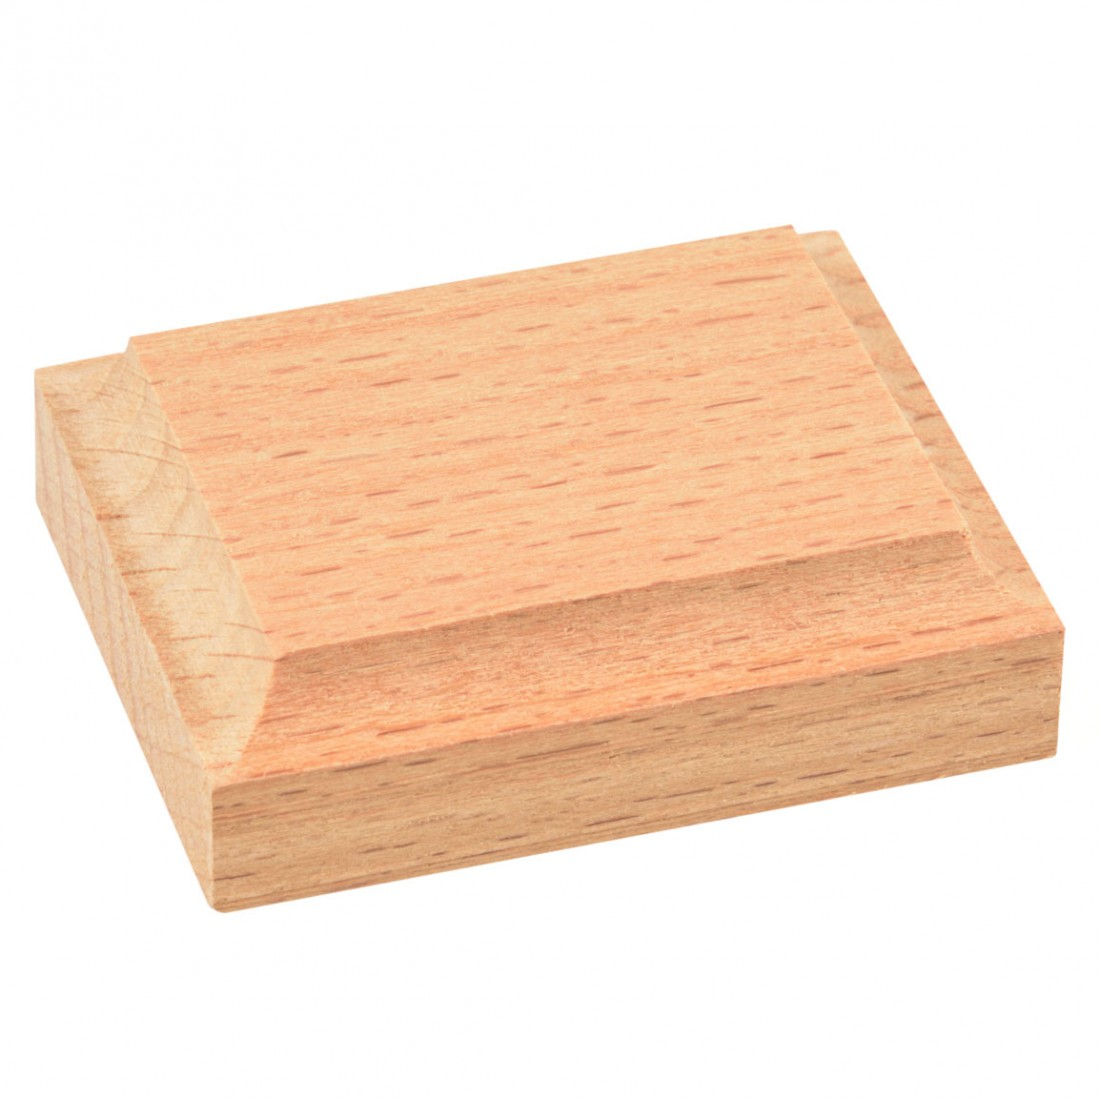 Wooden Base 50x40 mm